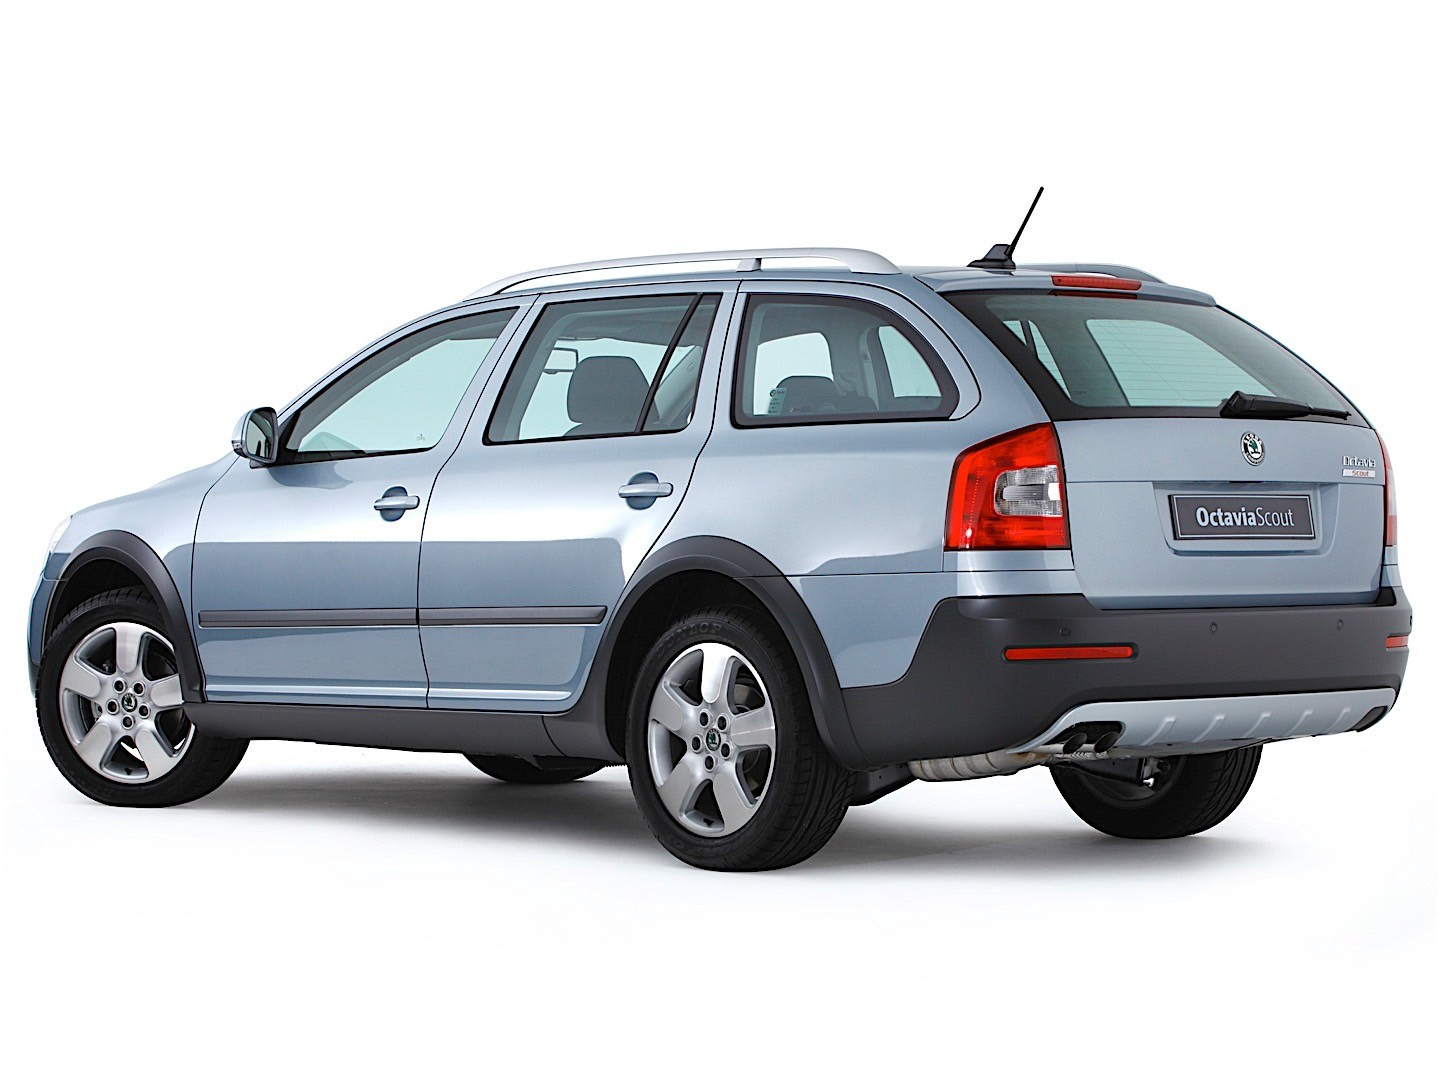 skoda octavia scout specs 2009 2010 2011 2012 2013 autoevolution. Black Bedroom Furniture Sets. Home Design Ideas